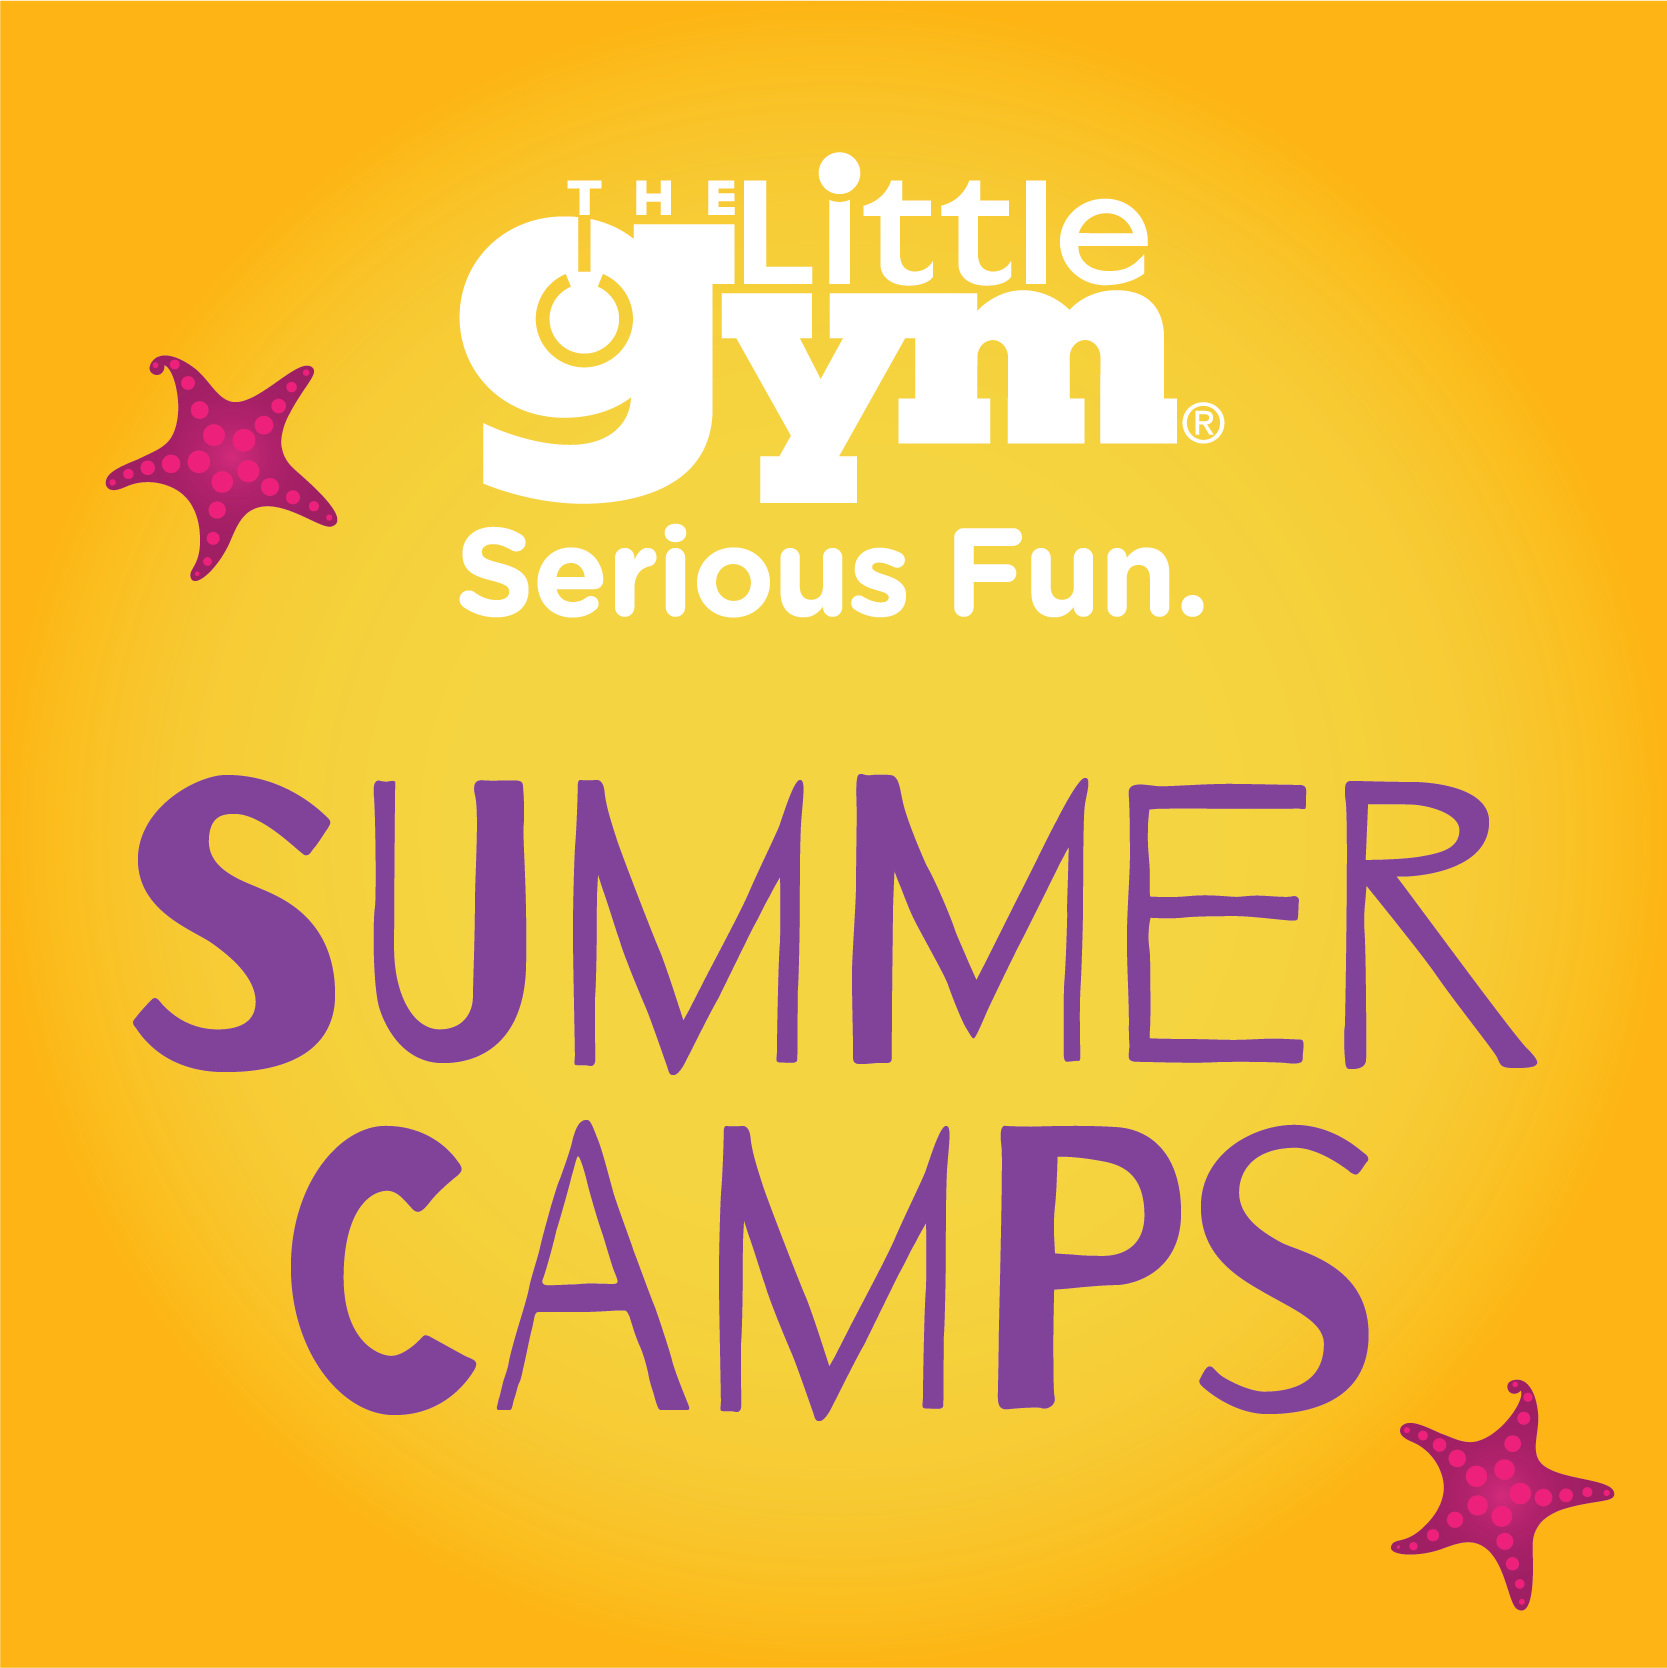 The Little Gym-Summer Camps in Vasanth Nagar, Bangalore